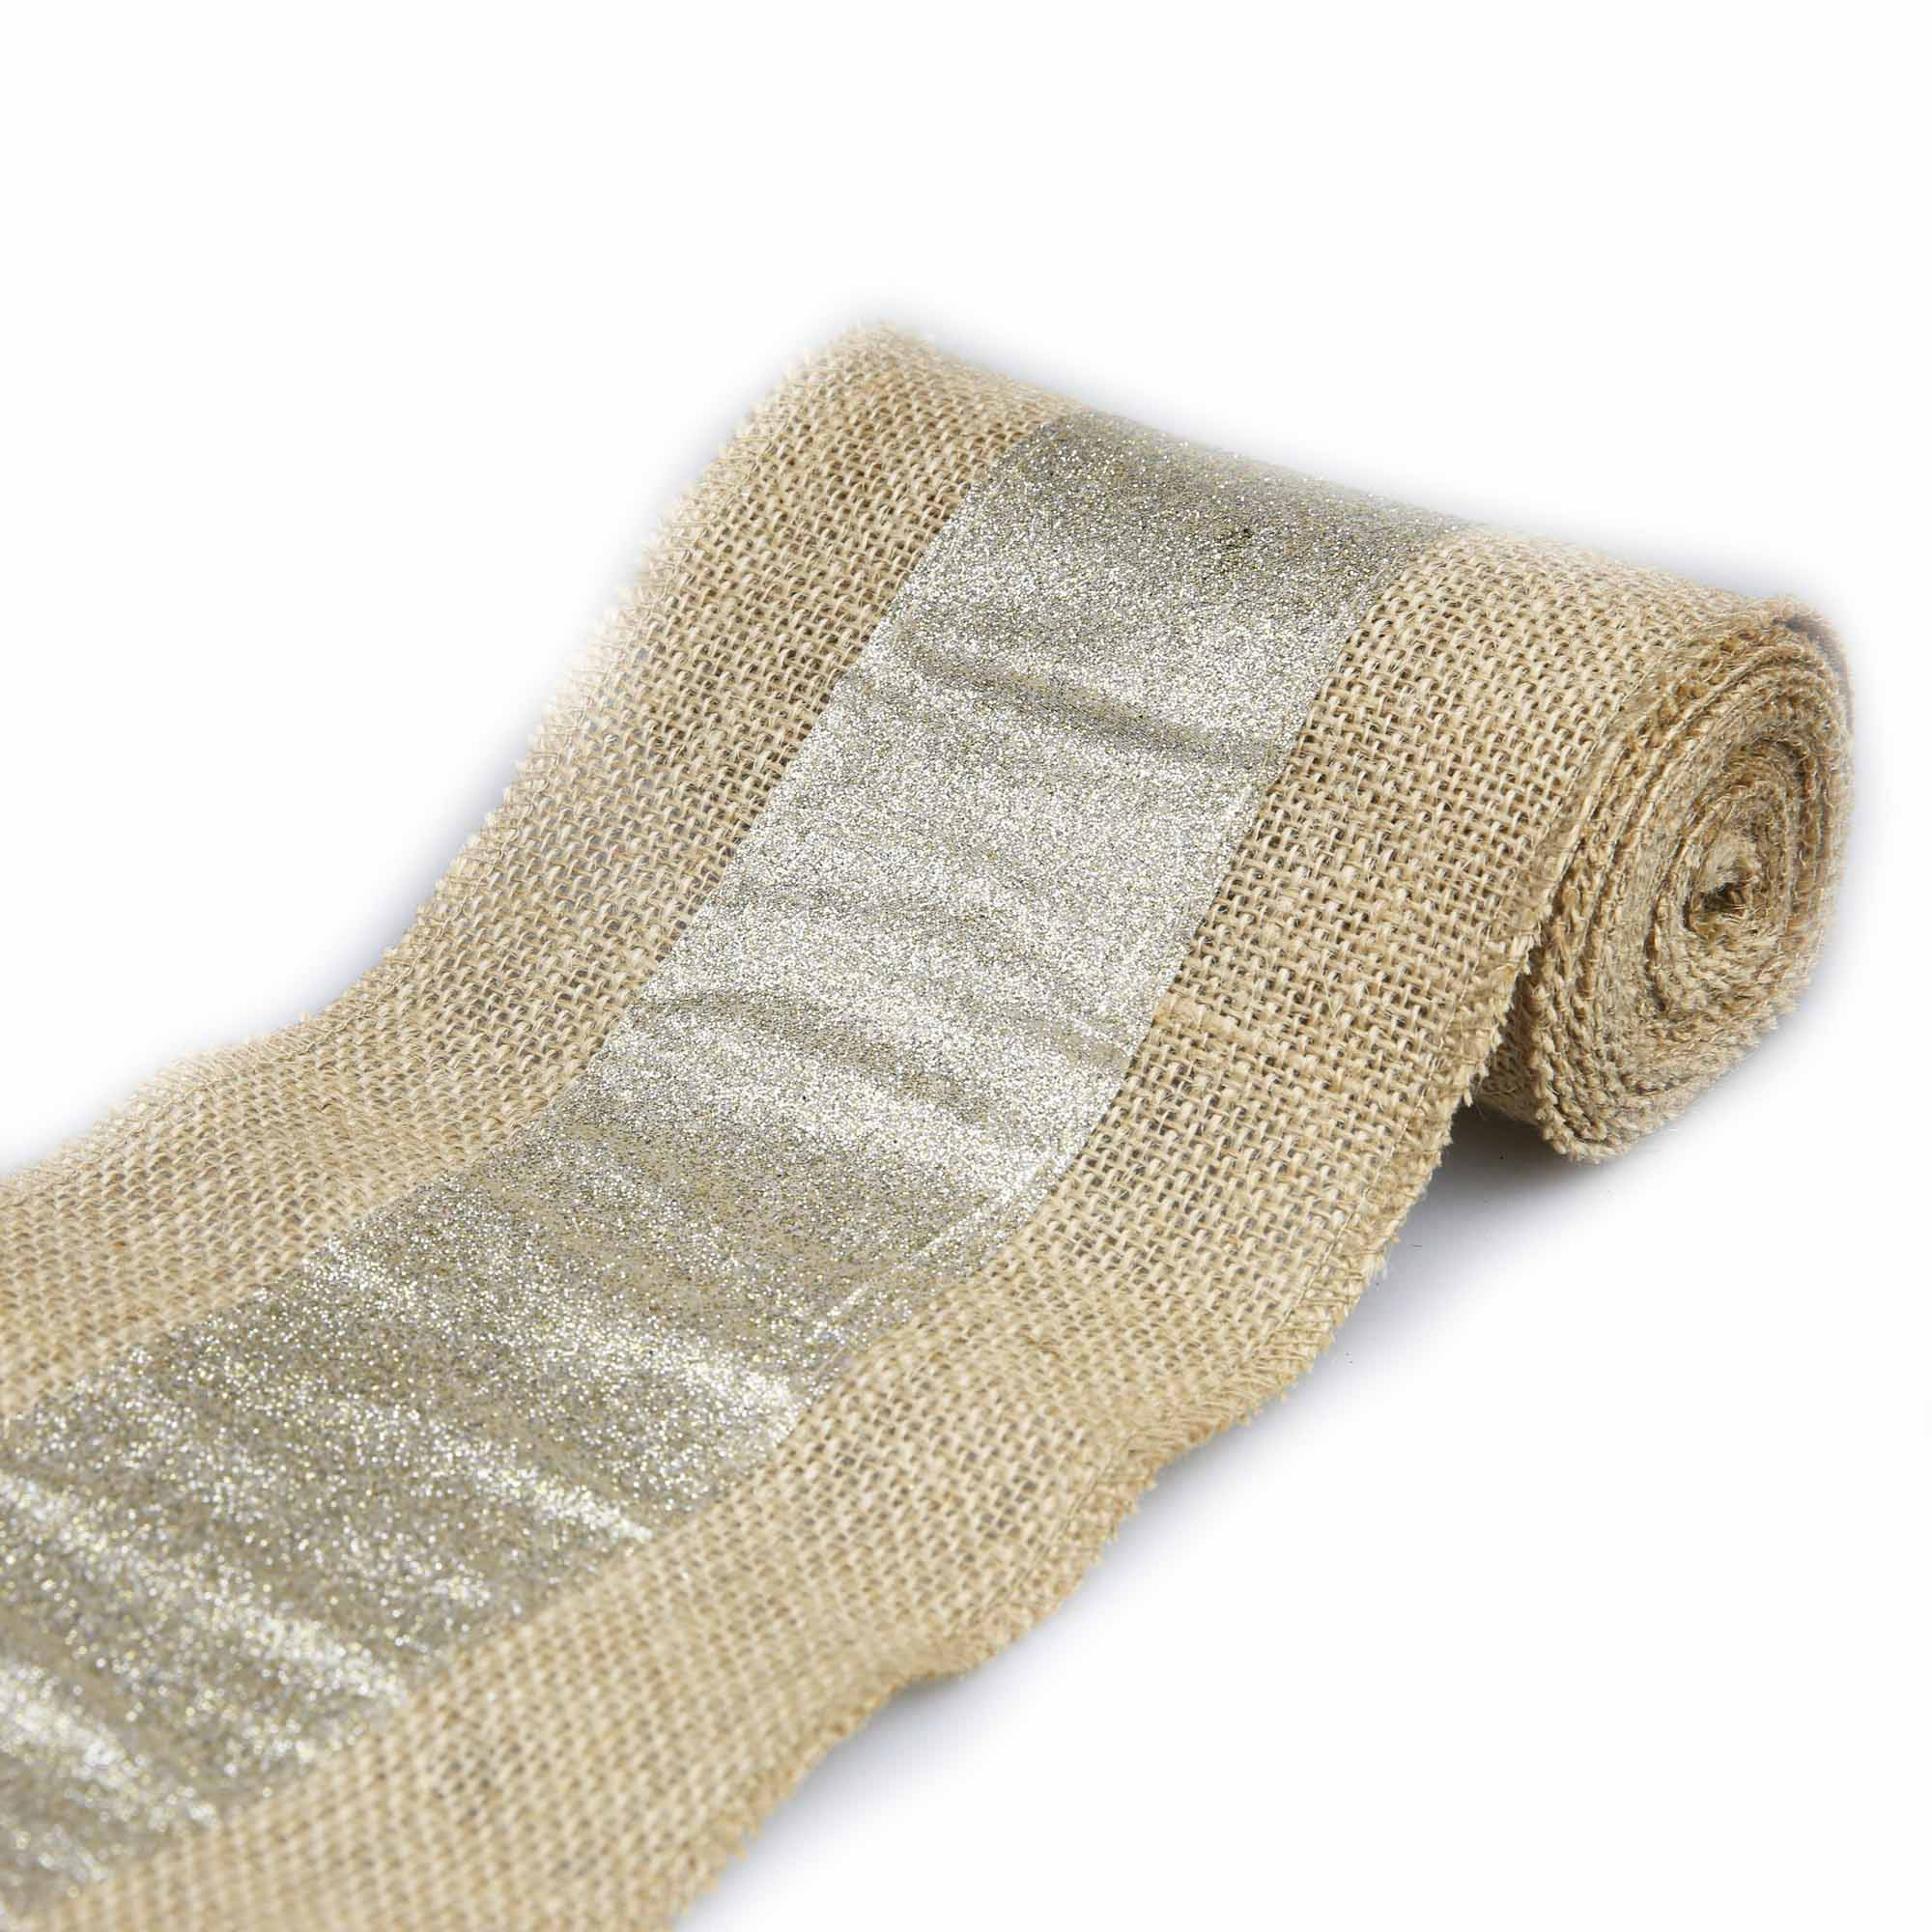 Natural Burlap with Gold Stripe, 1 Each